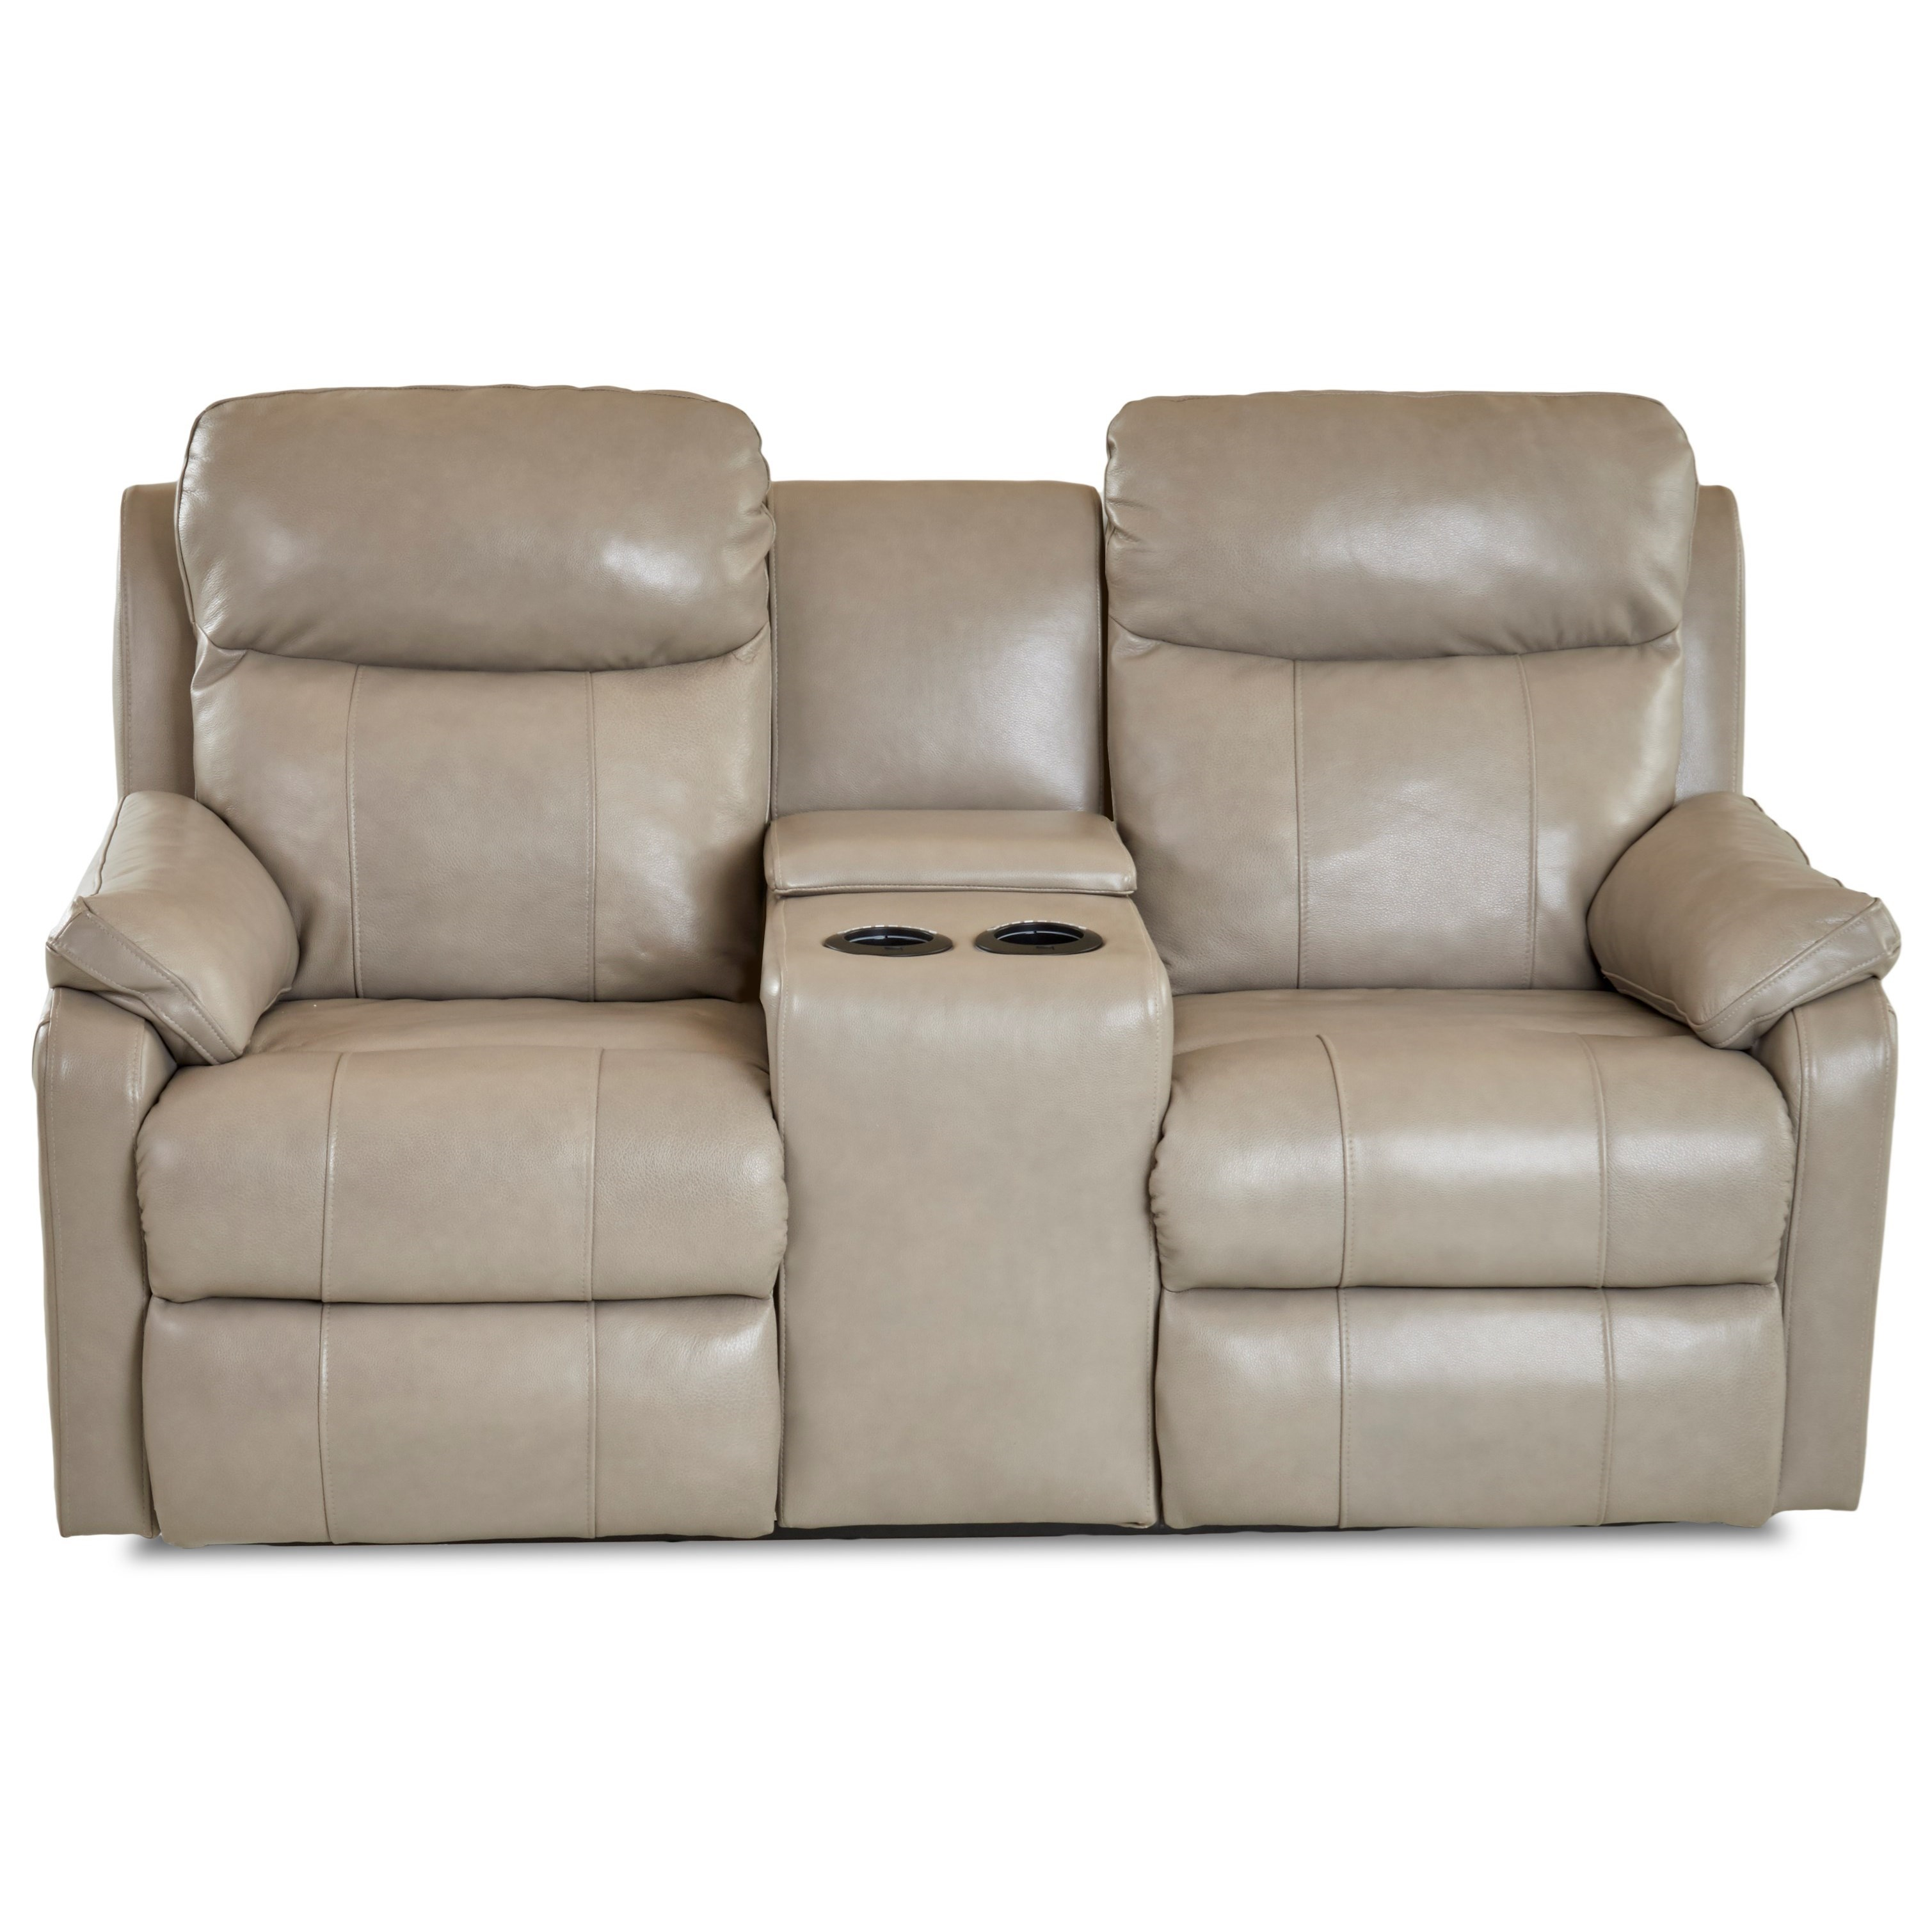 Casual Console Power Reclining Loveseat with USB Charging Ports and Power Head & Lumbar